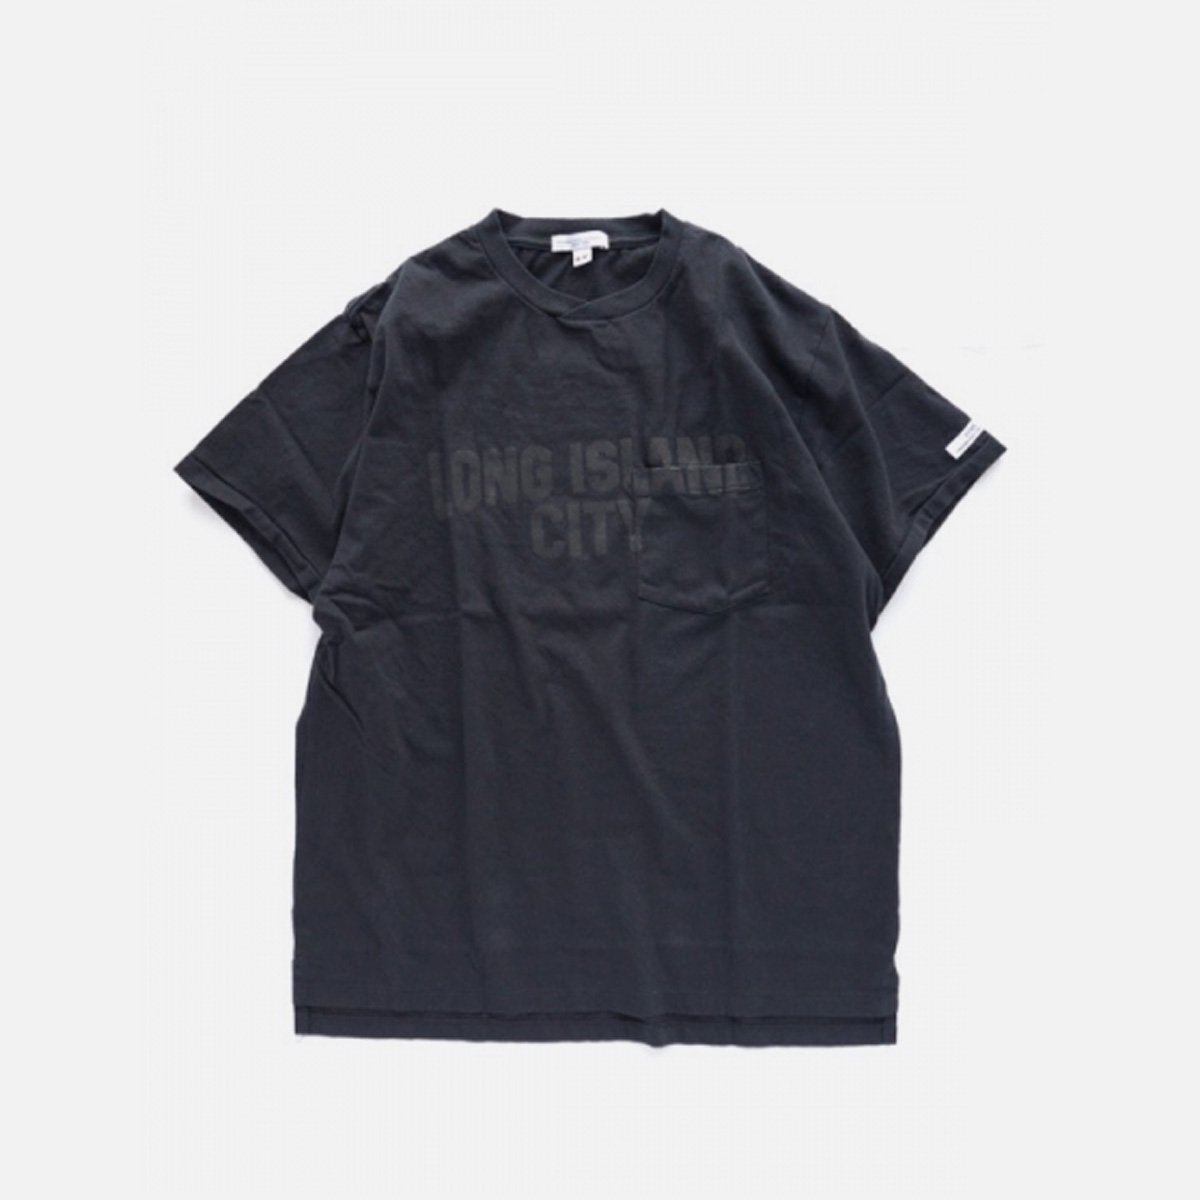 Engineered Garments Printed Cross Crew Neck T-shirt - LONG ISLAND CITY  (NAVY)